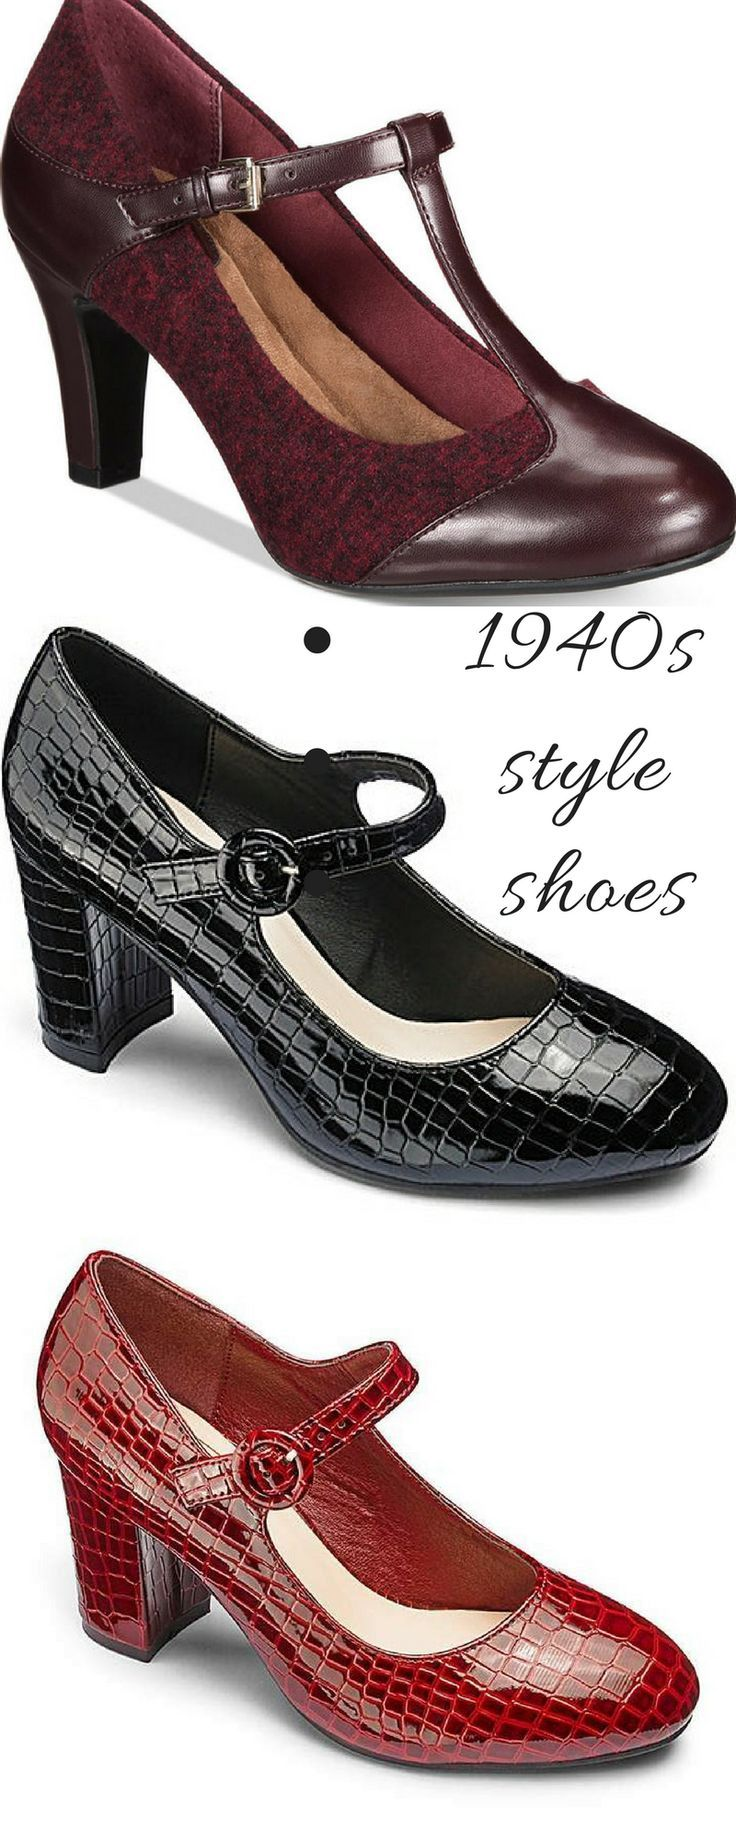 1940s Style Shoes For Everyday Wear Reinactment Weekends Vintage Style And Retro Footwear Great Prices 1 Vintage Shoes Retro Fashion Vintage Trendy Fashion